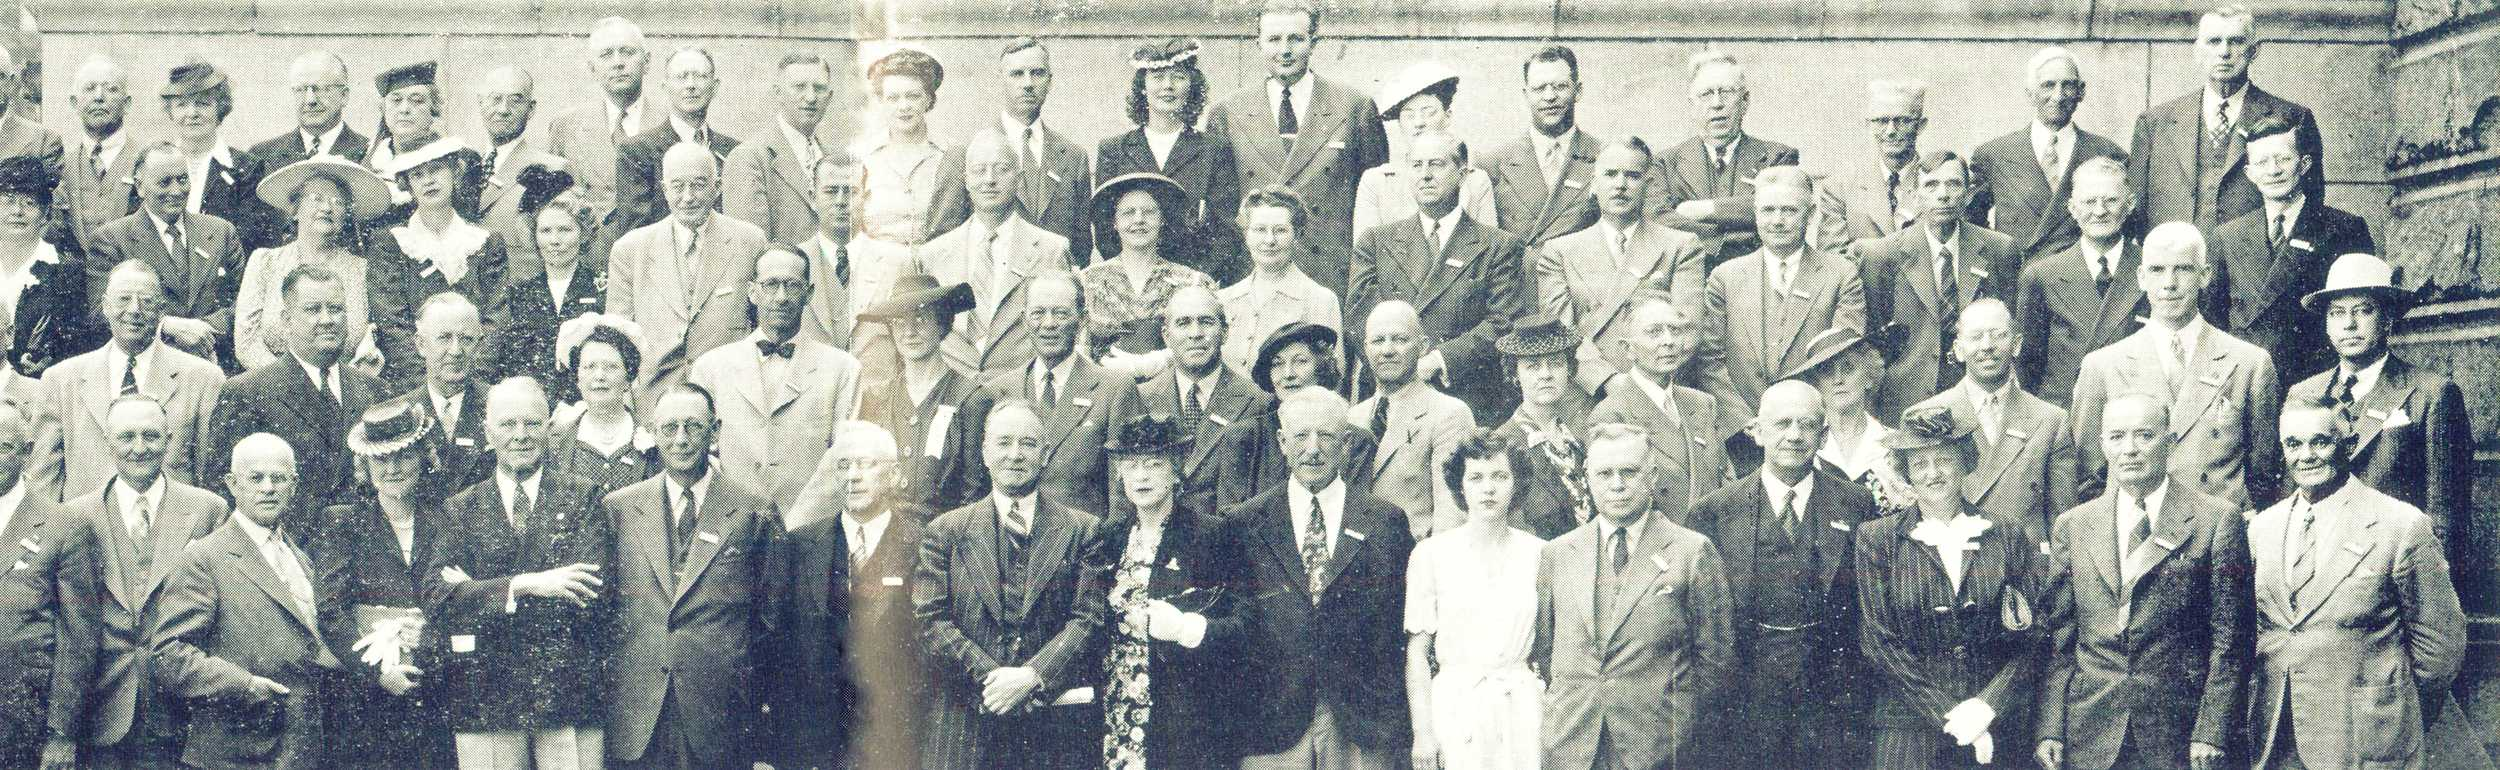 1943 Annual Conference, Vancouver, British Columbia